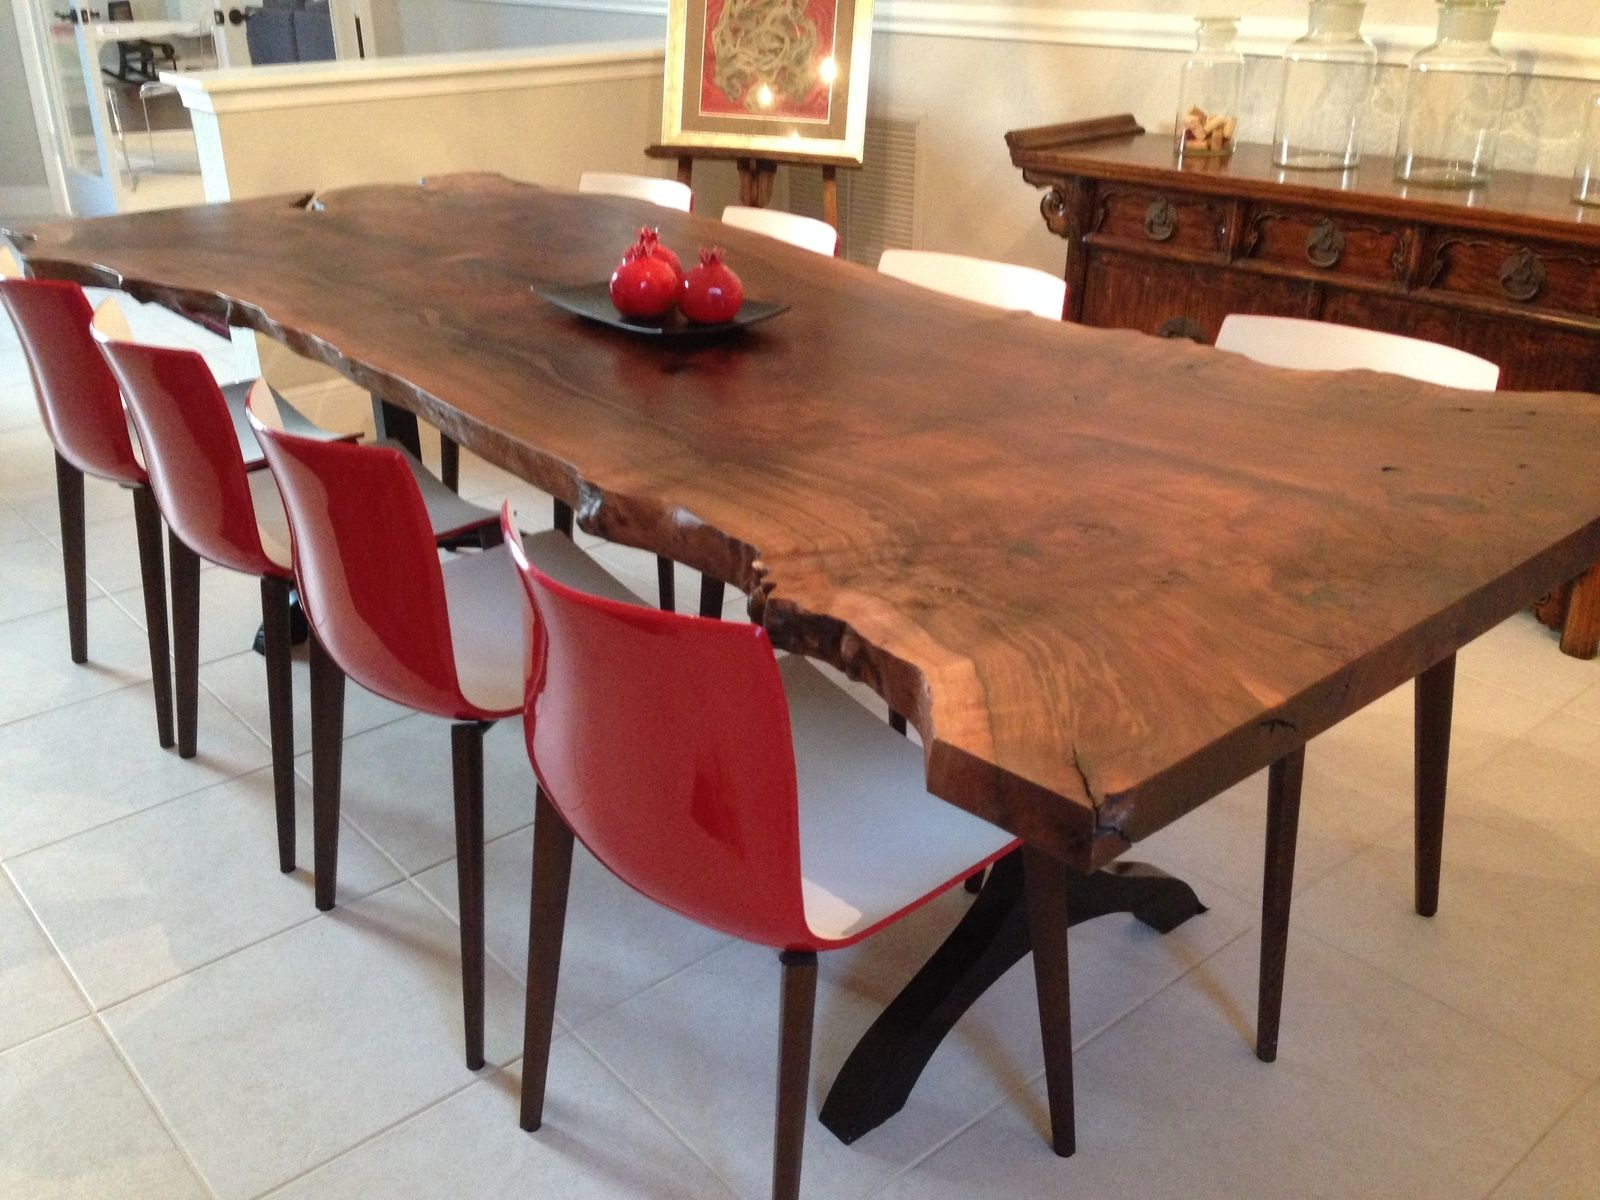 Handmade Walnut Live Edge Slab Dining Table By Zac Divine Carpentry